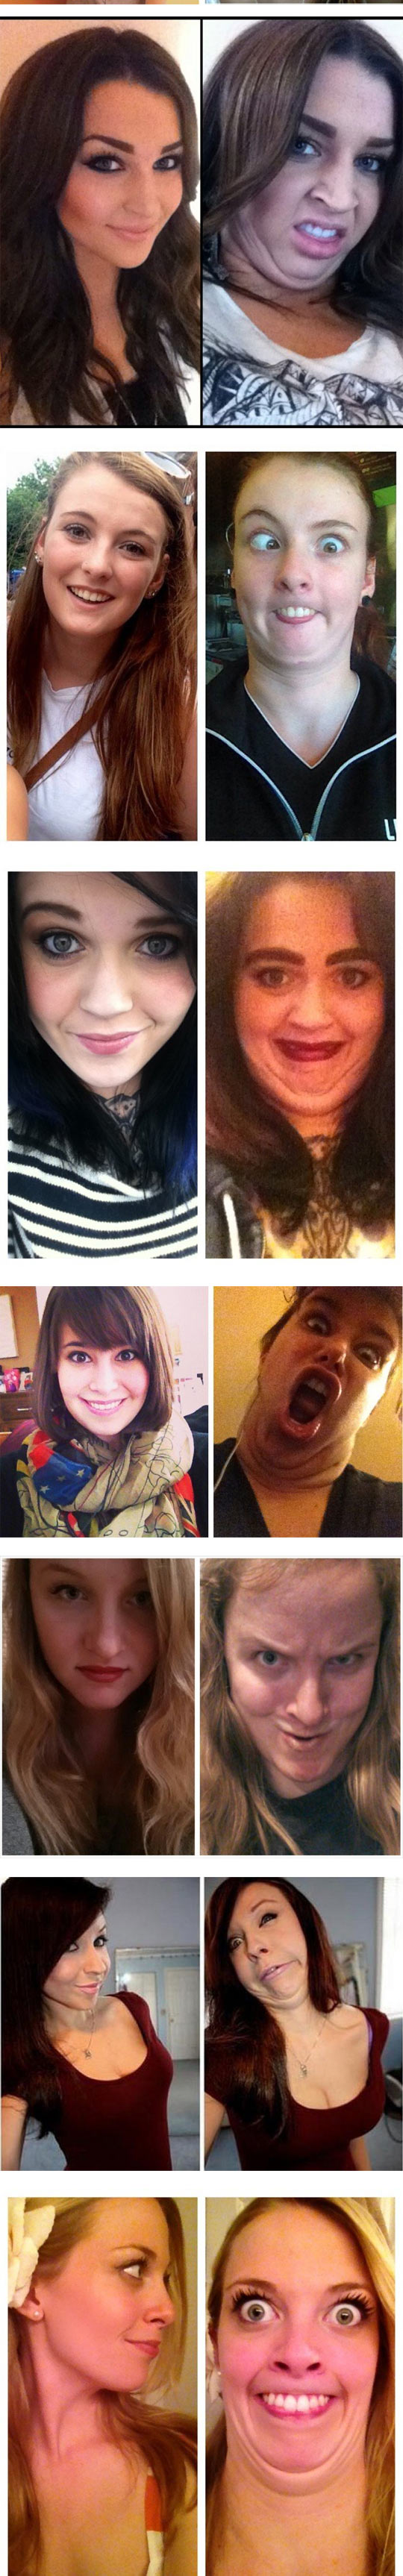 funny-beautiful-women-ugly-faces-eyes